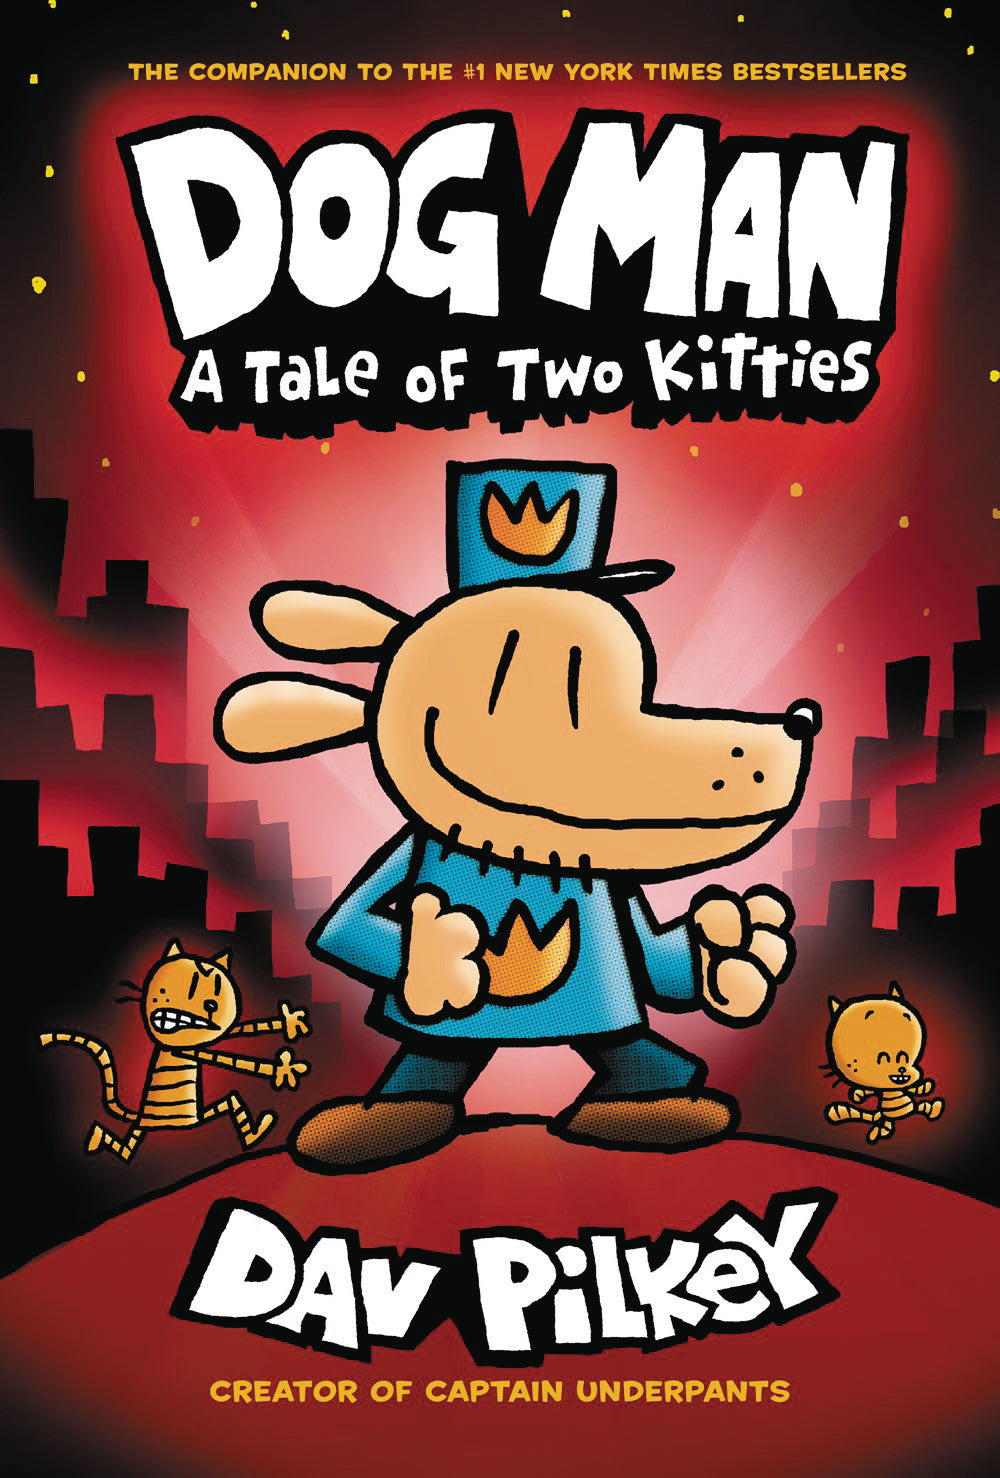 DOG MAN GN VOL 03 TALE OF TWO KITTIES (C: 0-1-0)